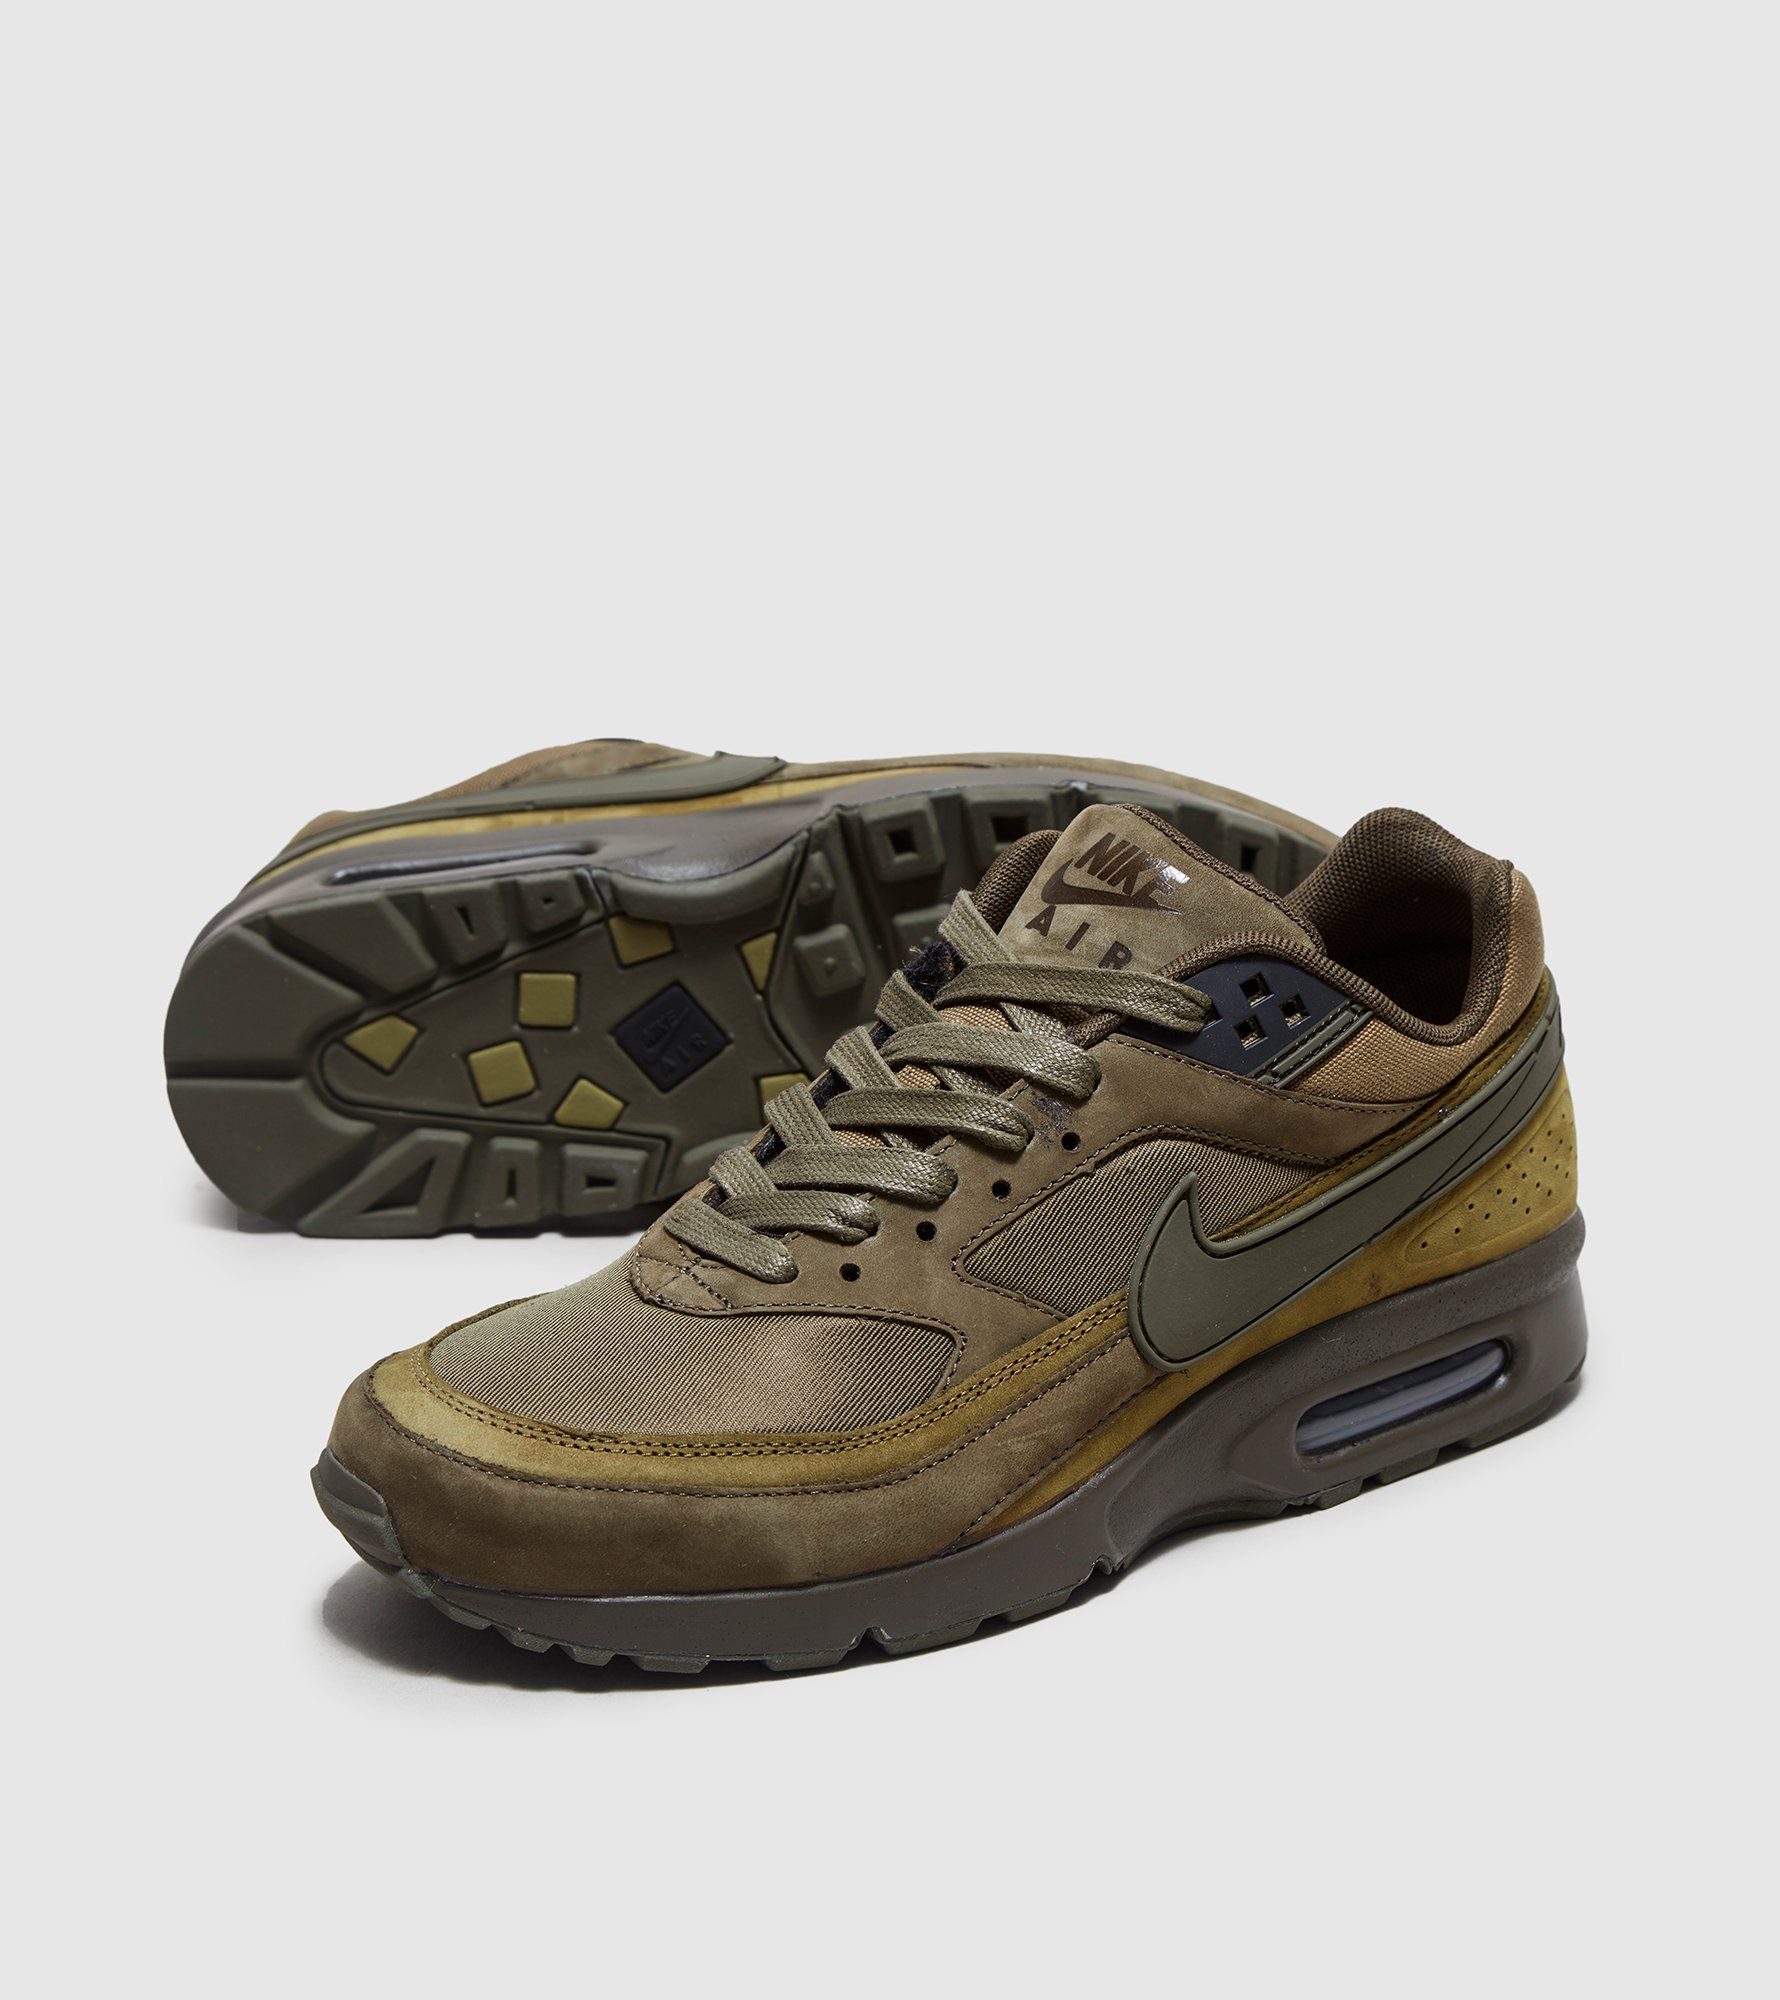 8d6ca4ad27 ... official nike air max bw premium size 22080 88f15